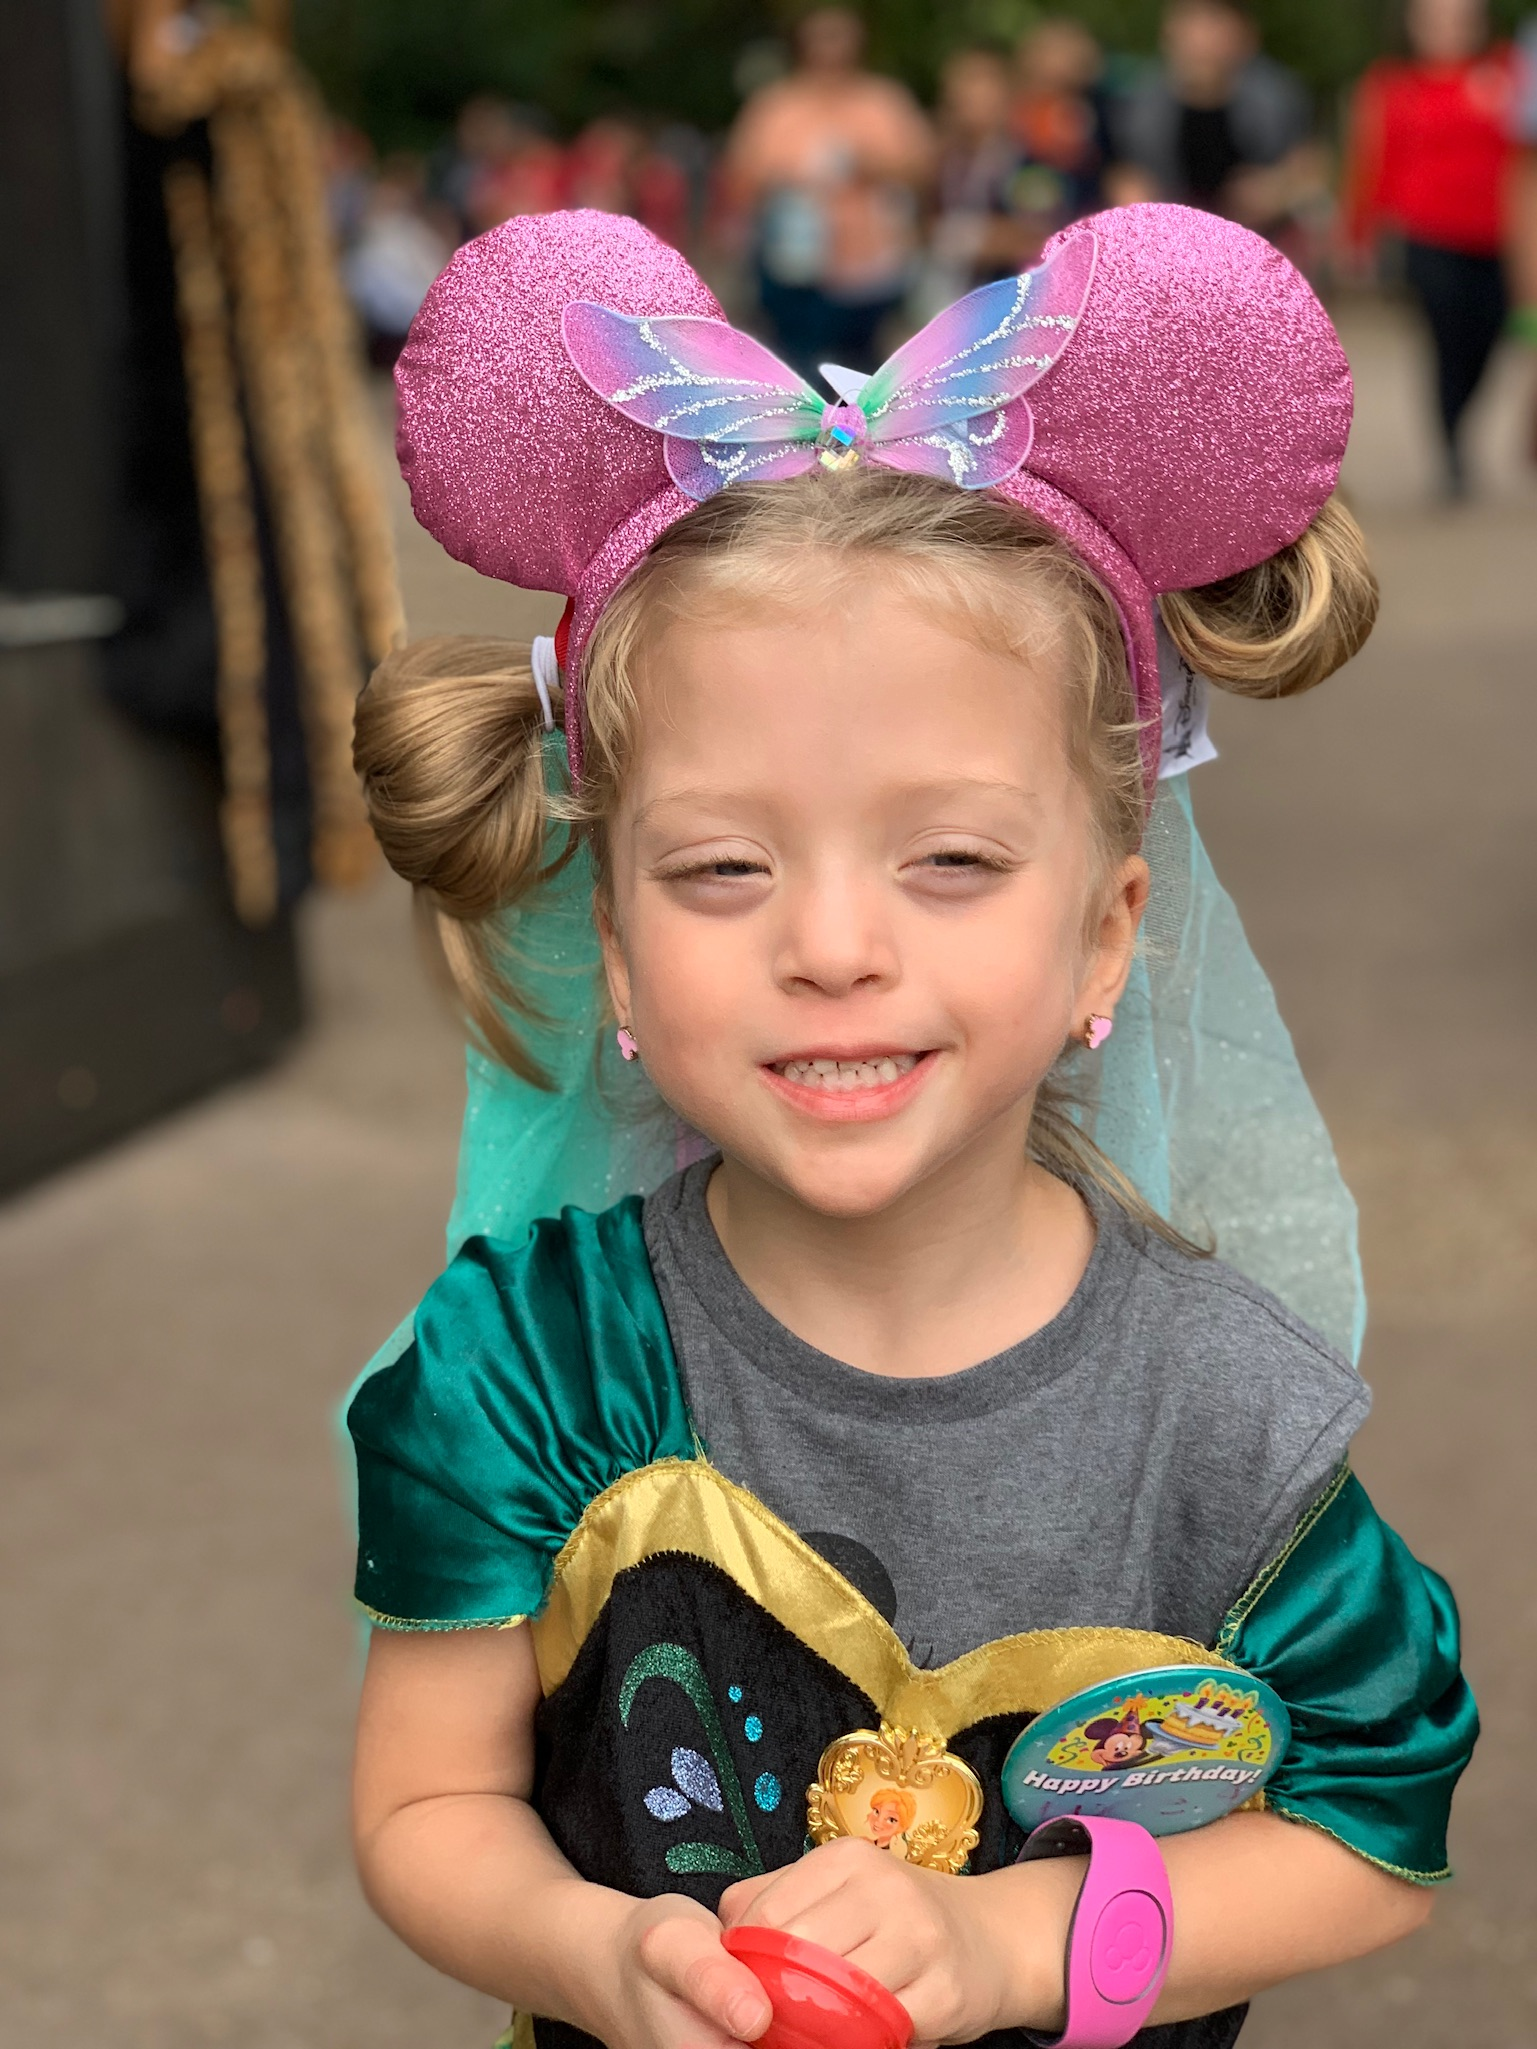 Trying on all the Minnie Ears.